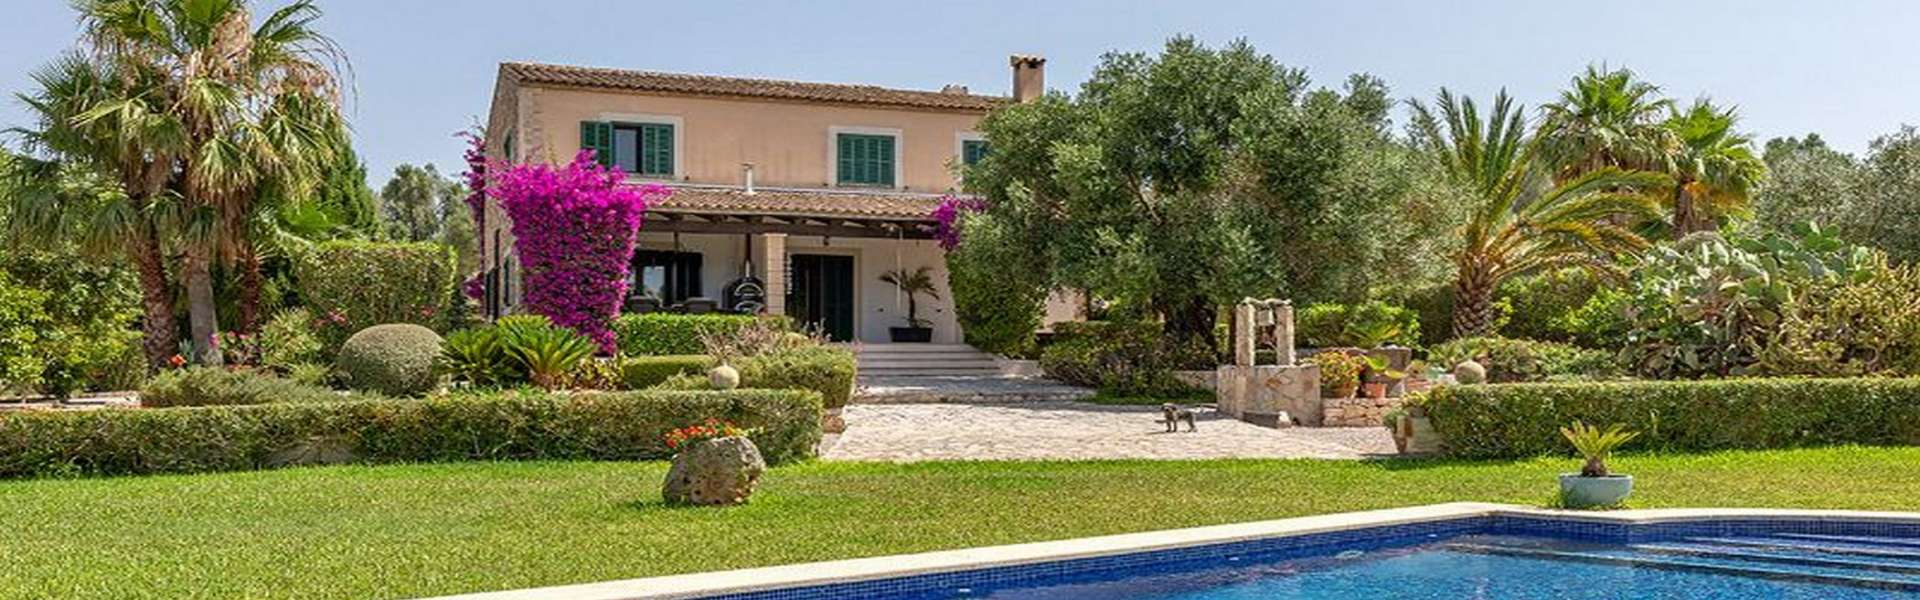 Traumhafte Finca mit Pool in Porreres